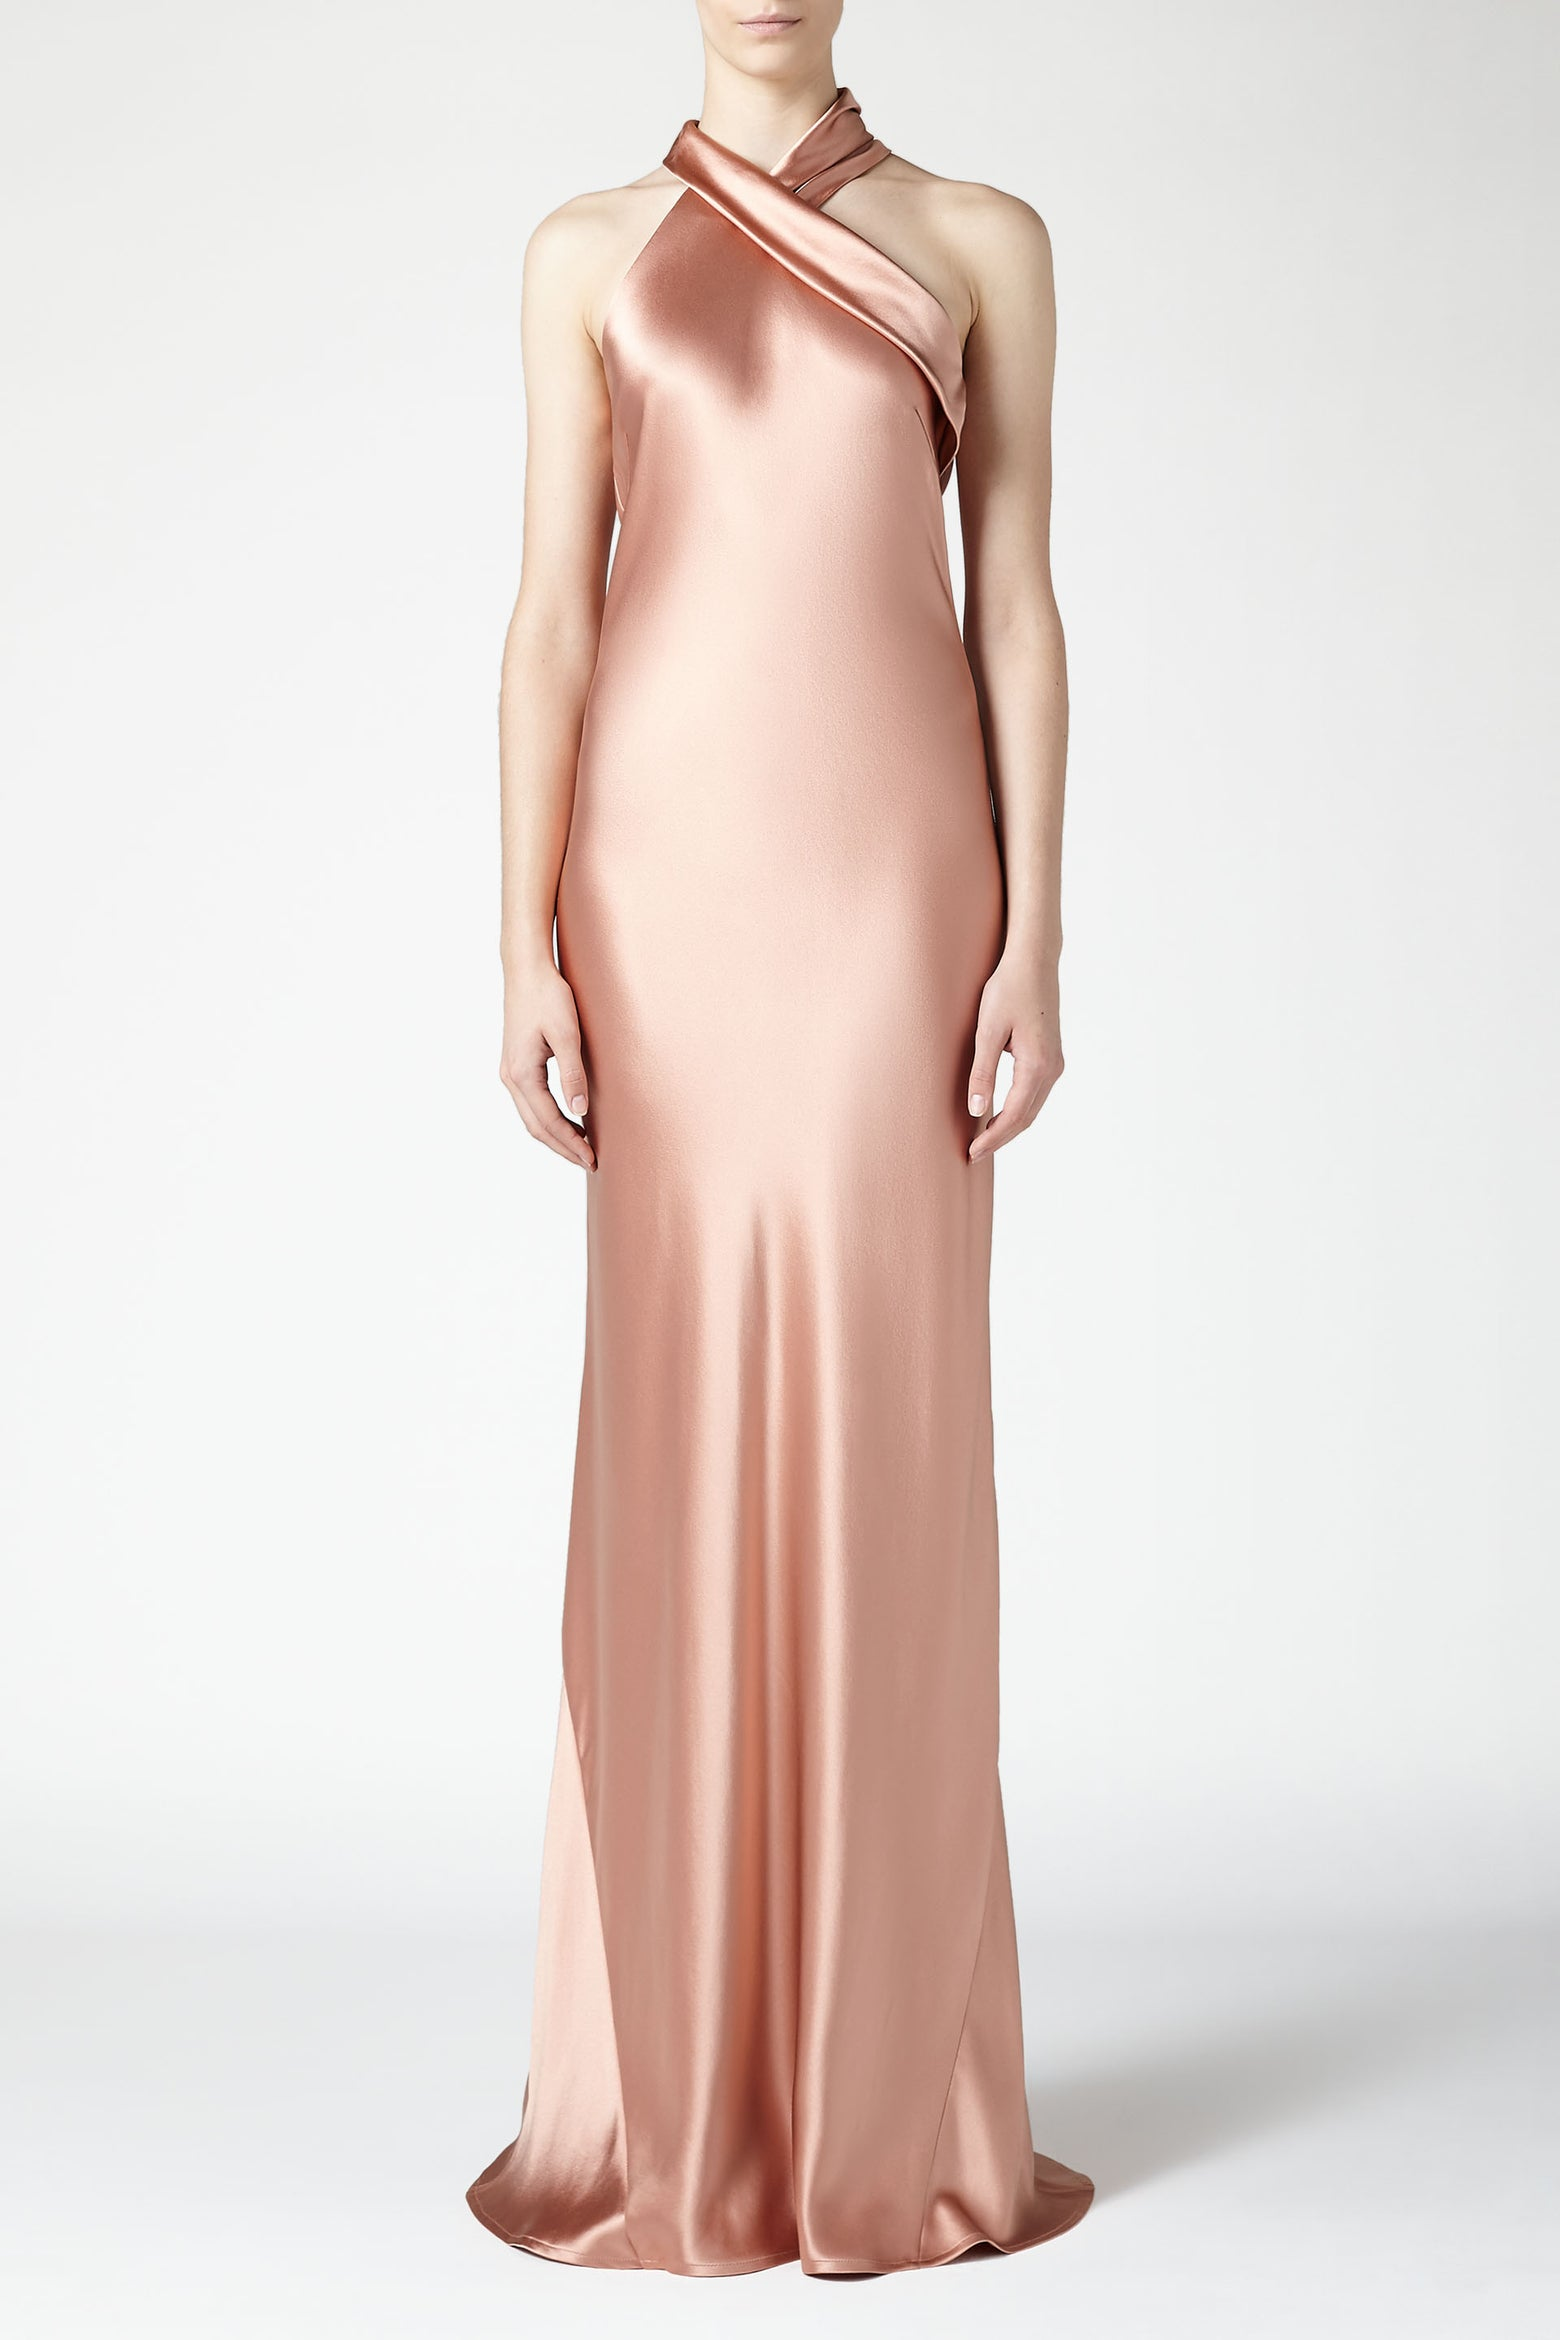 Pandora Dress - Rose Gold